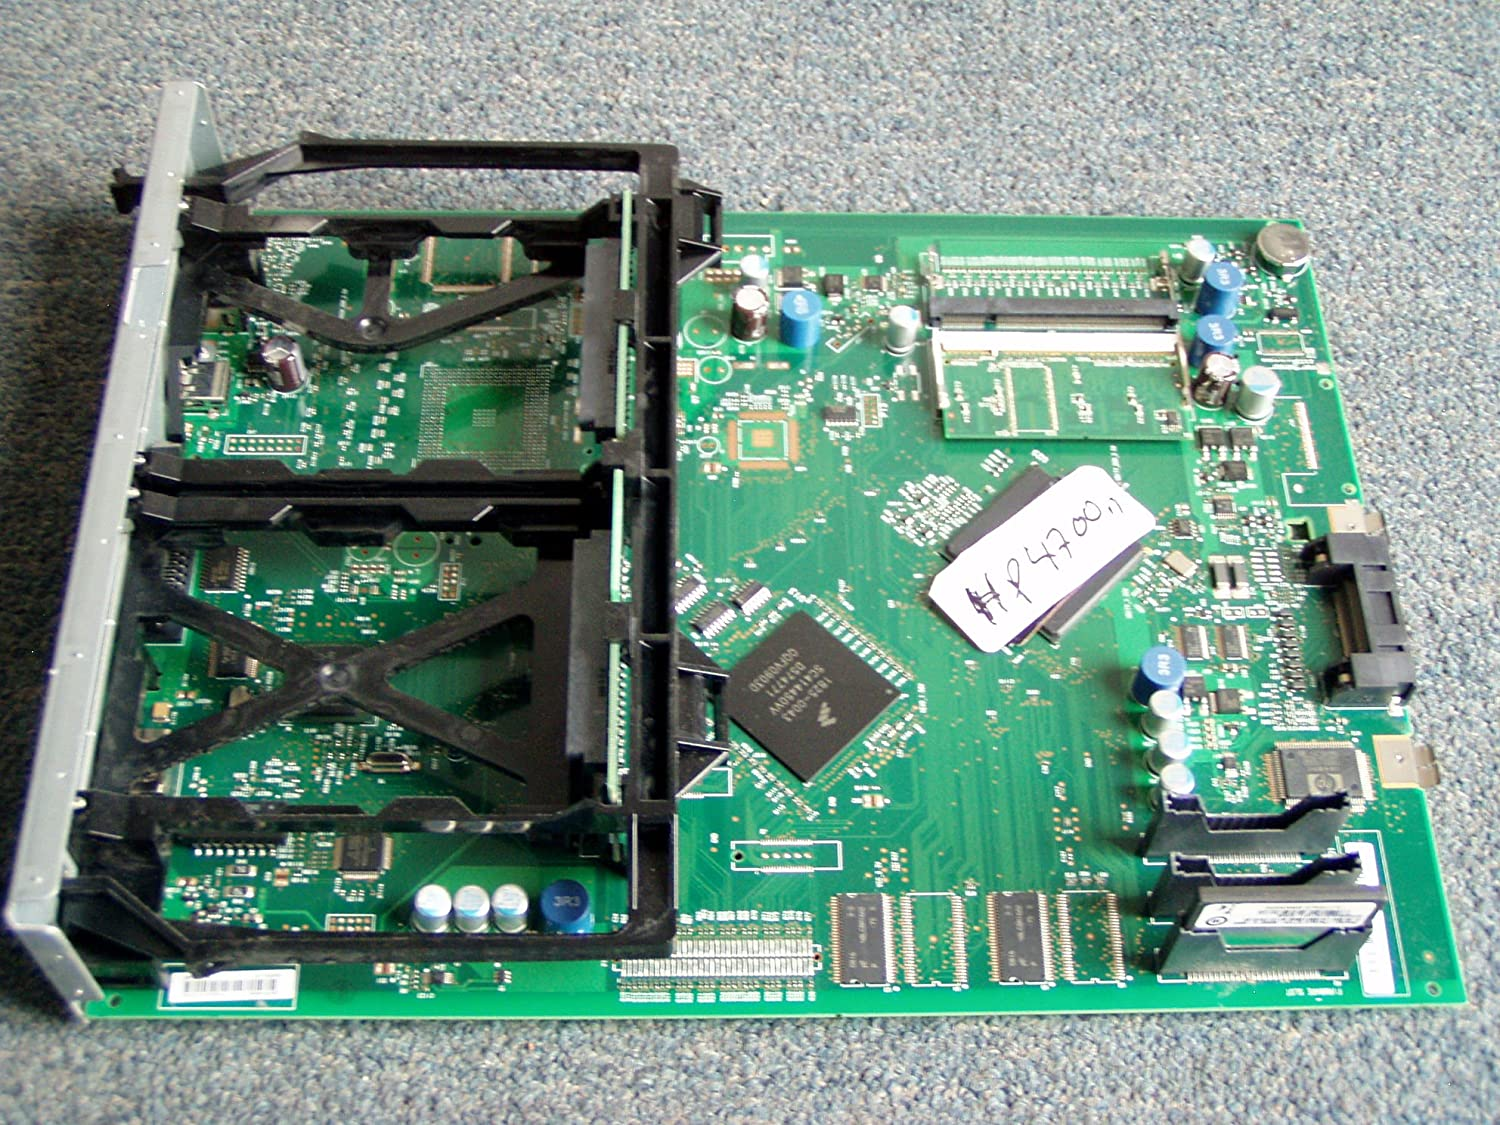 HP Formatter Board Q5979-60004 W/Ethernet, USB,Serial PortsFor HP 4700n, 4700dn, 4700dtn